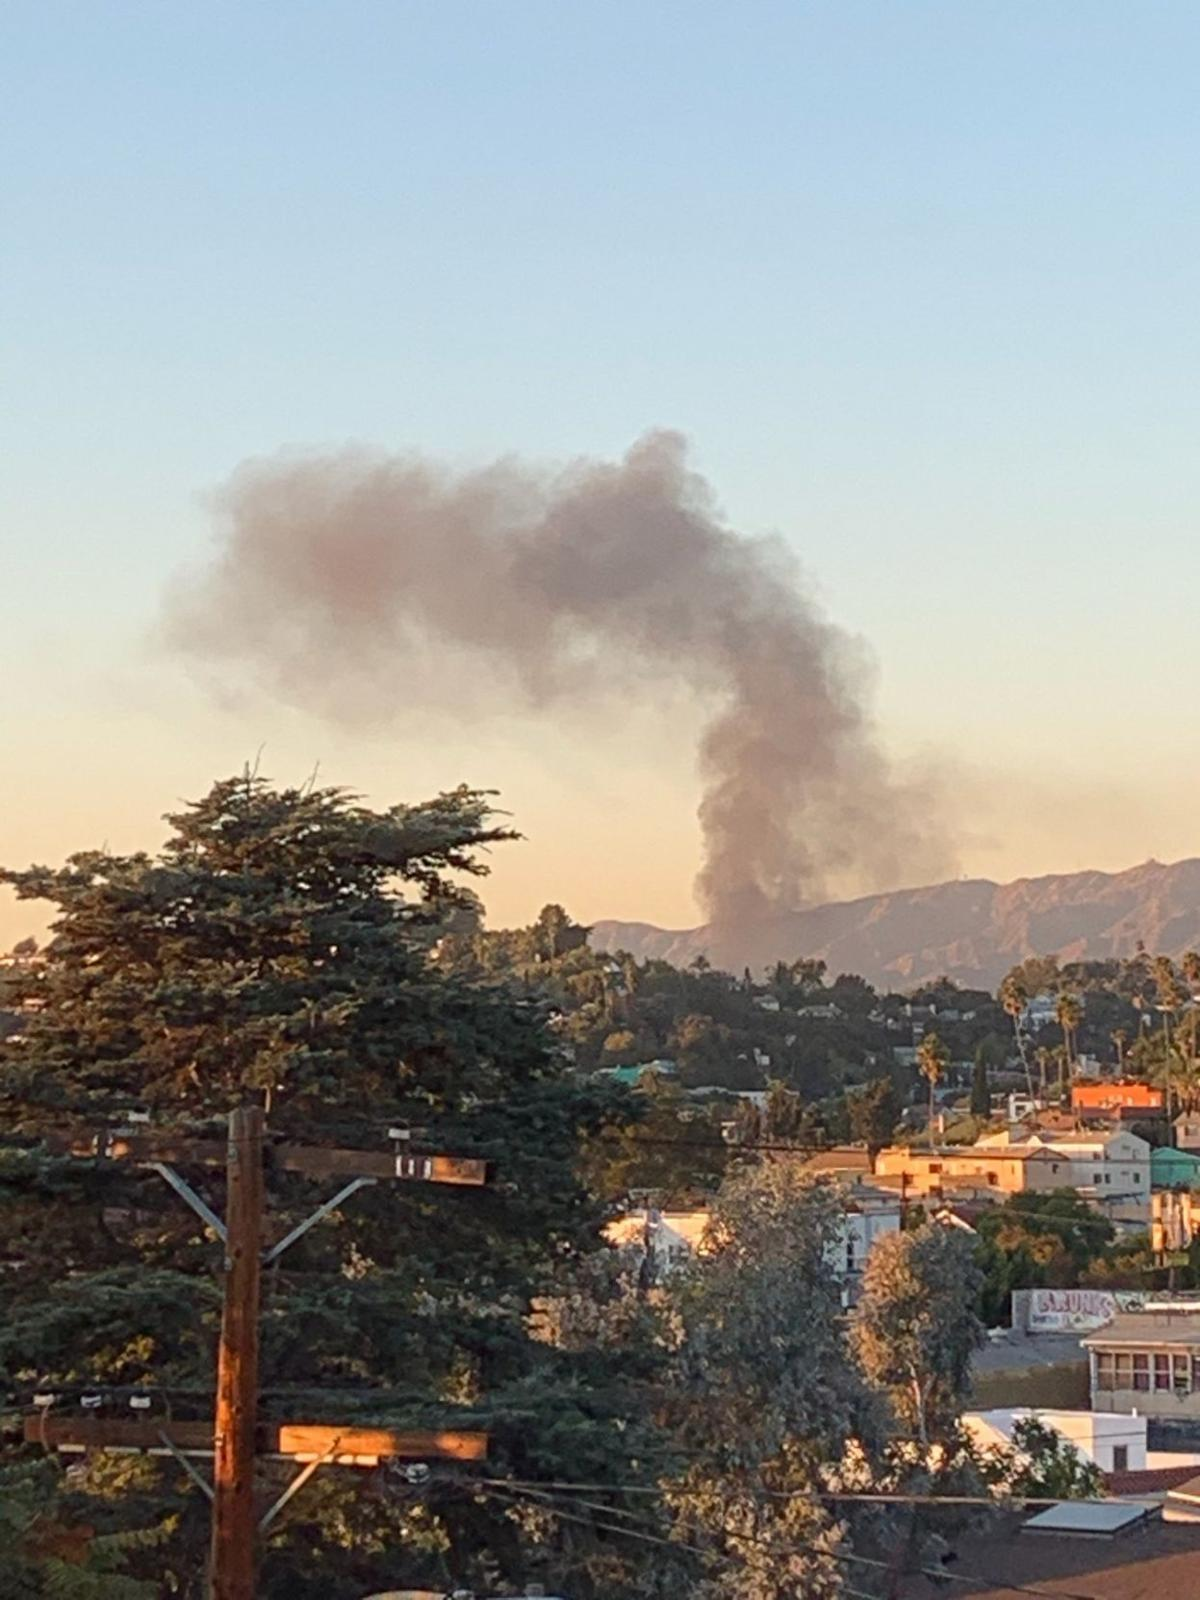 Smoke from Atwater Village recycling yard fire